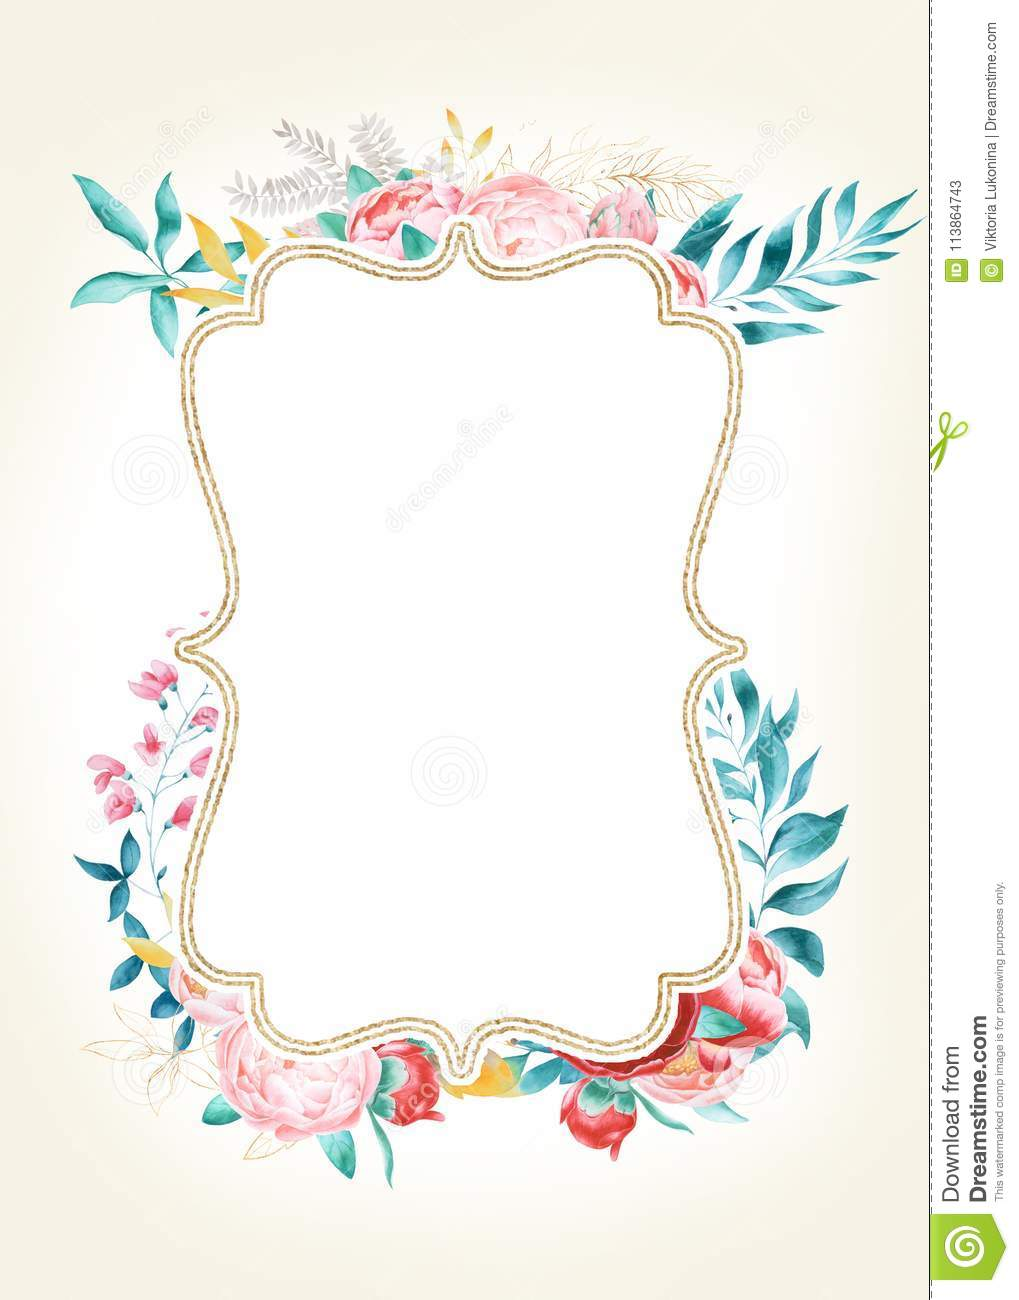 Card Template With Watercolor Peonies Stock Illustration